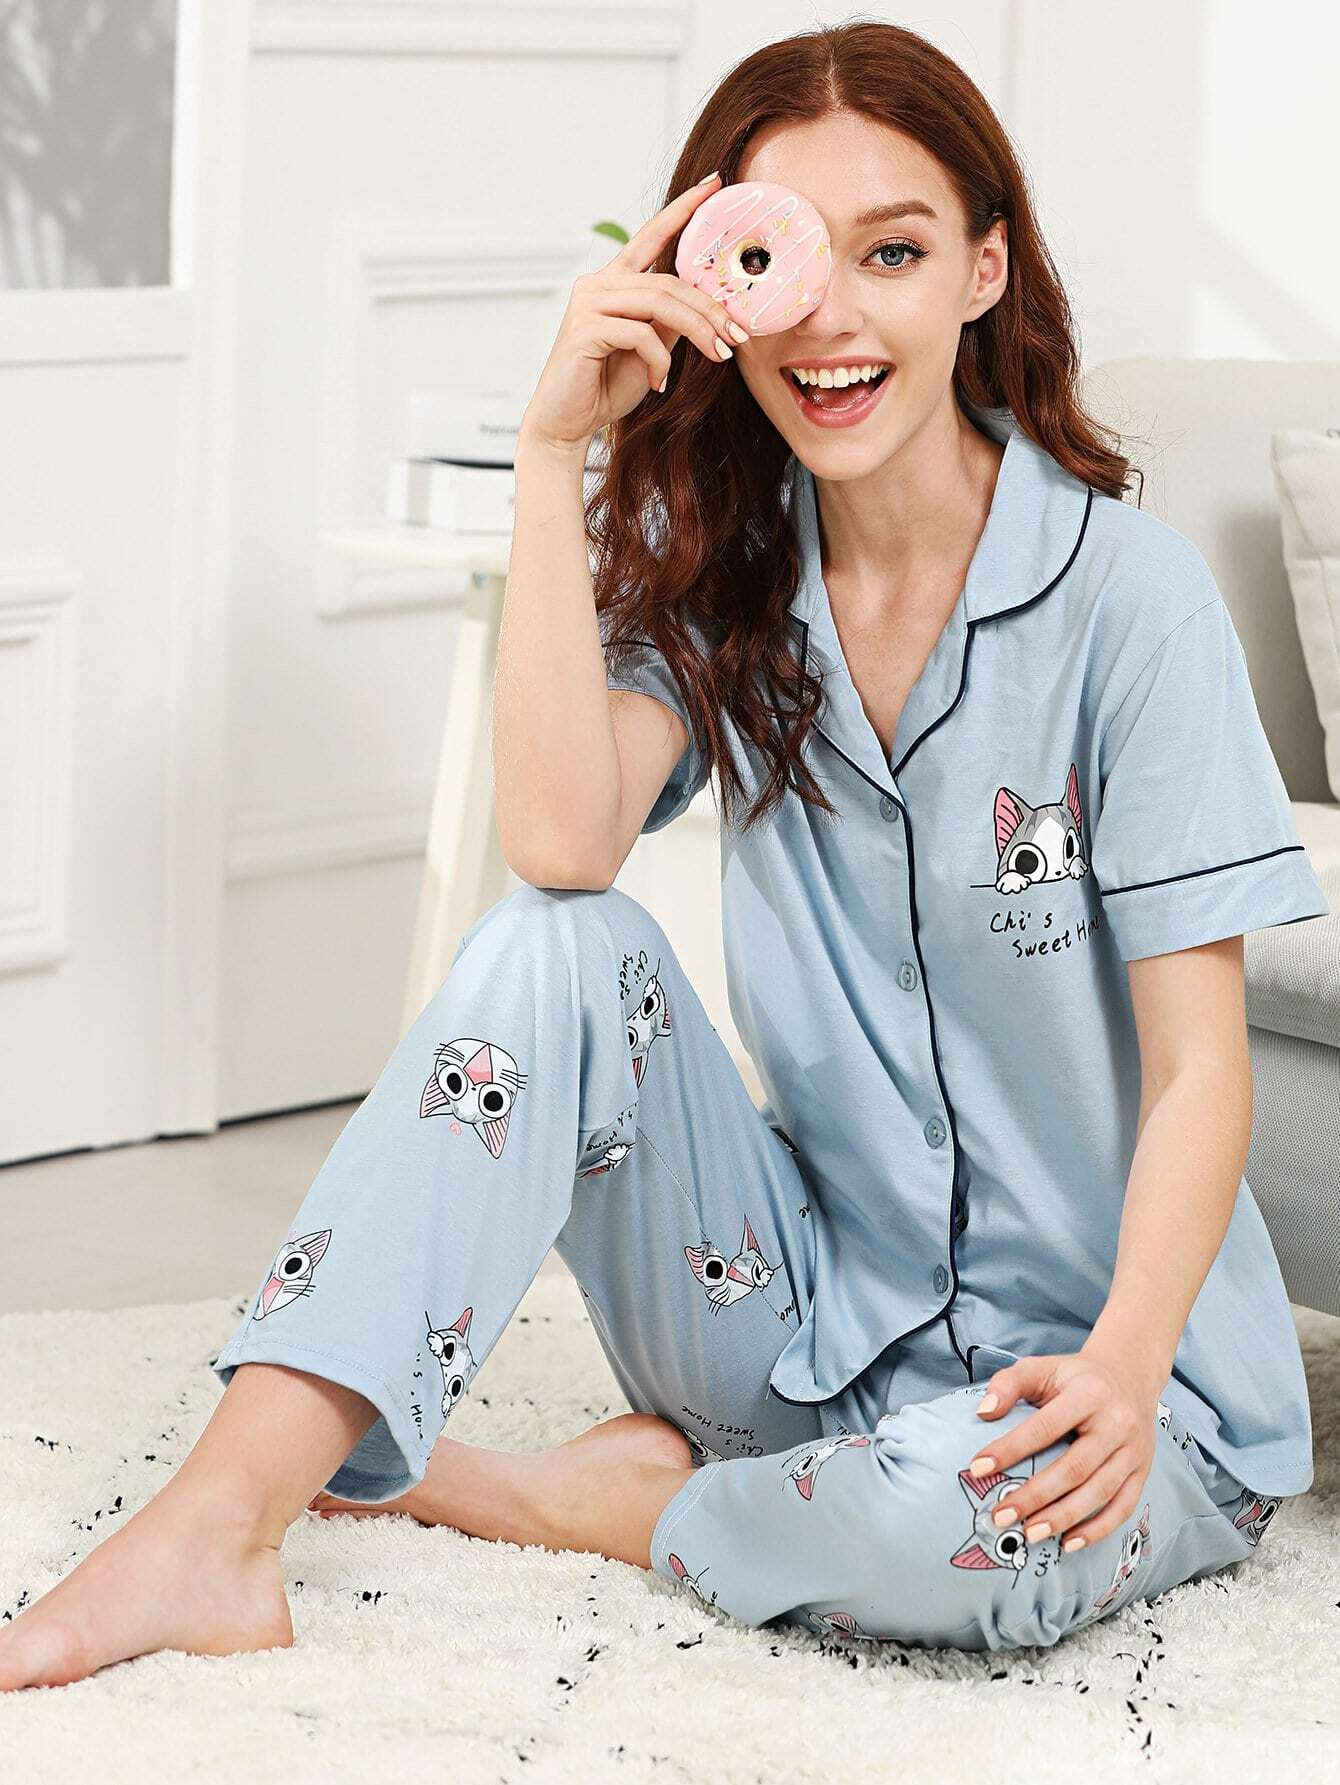 Cat & Letter Print Pajama Set all over cat print pajama set